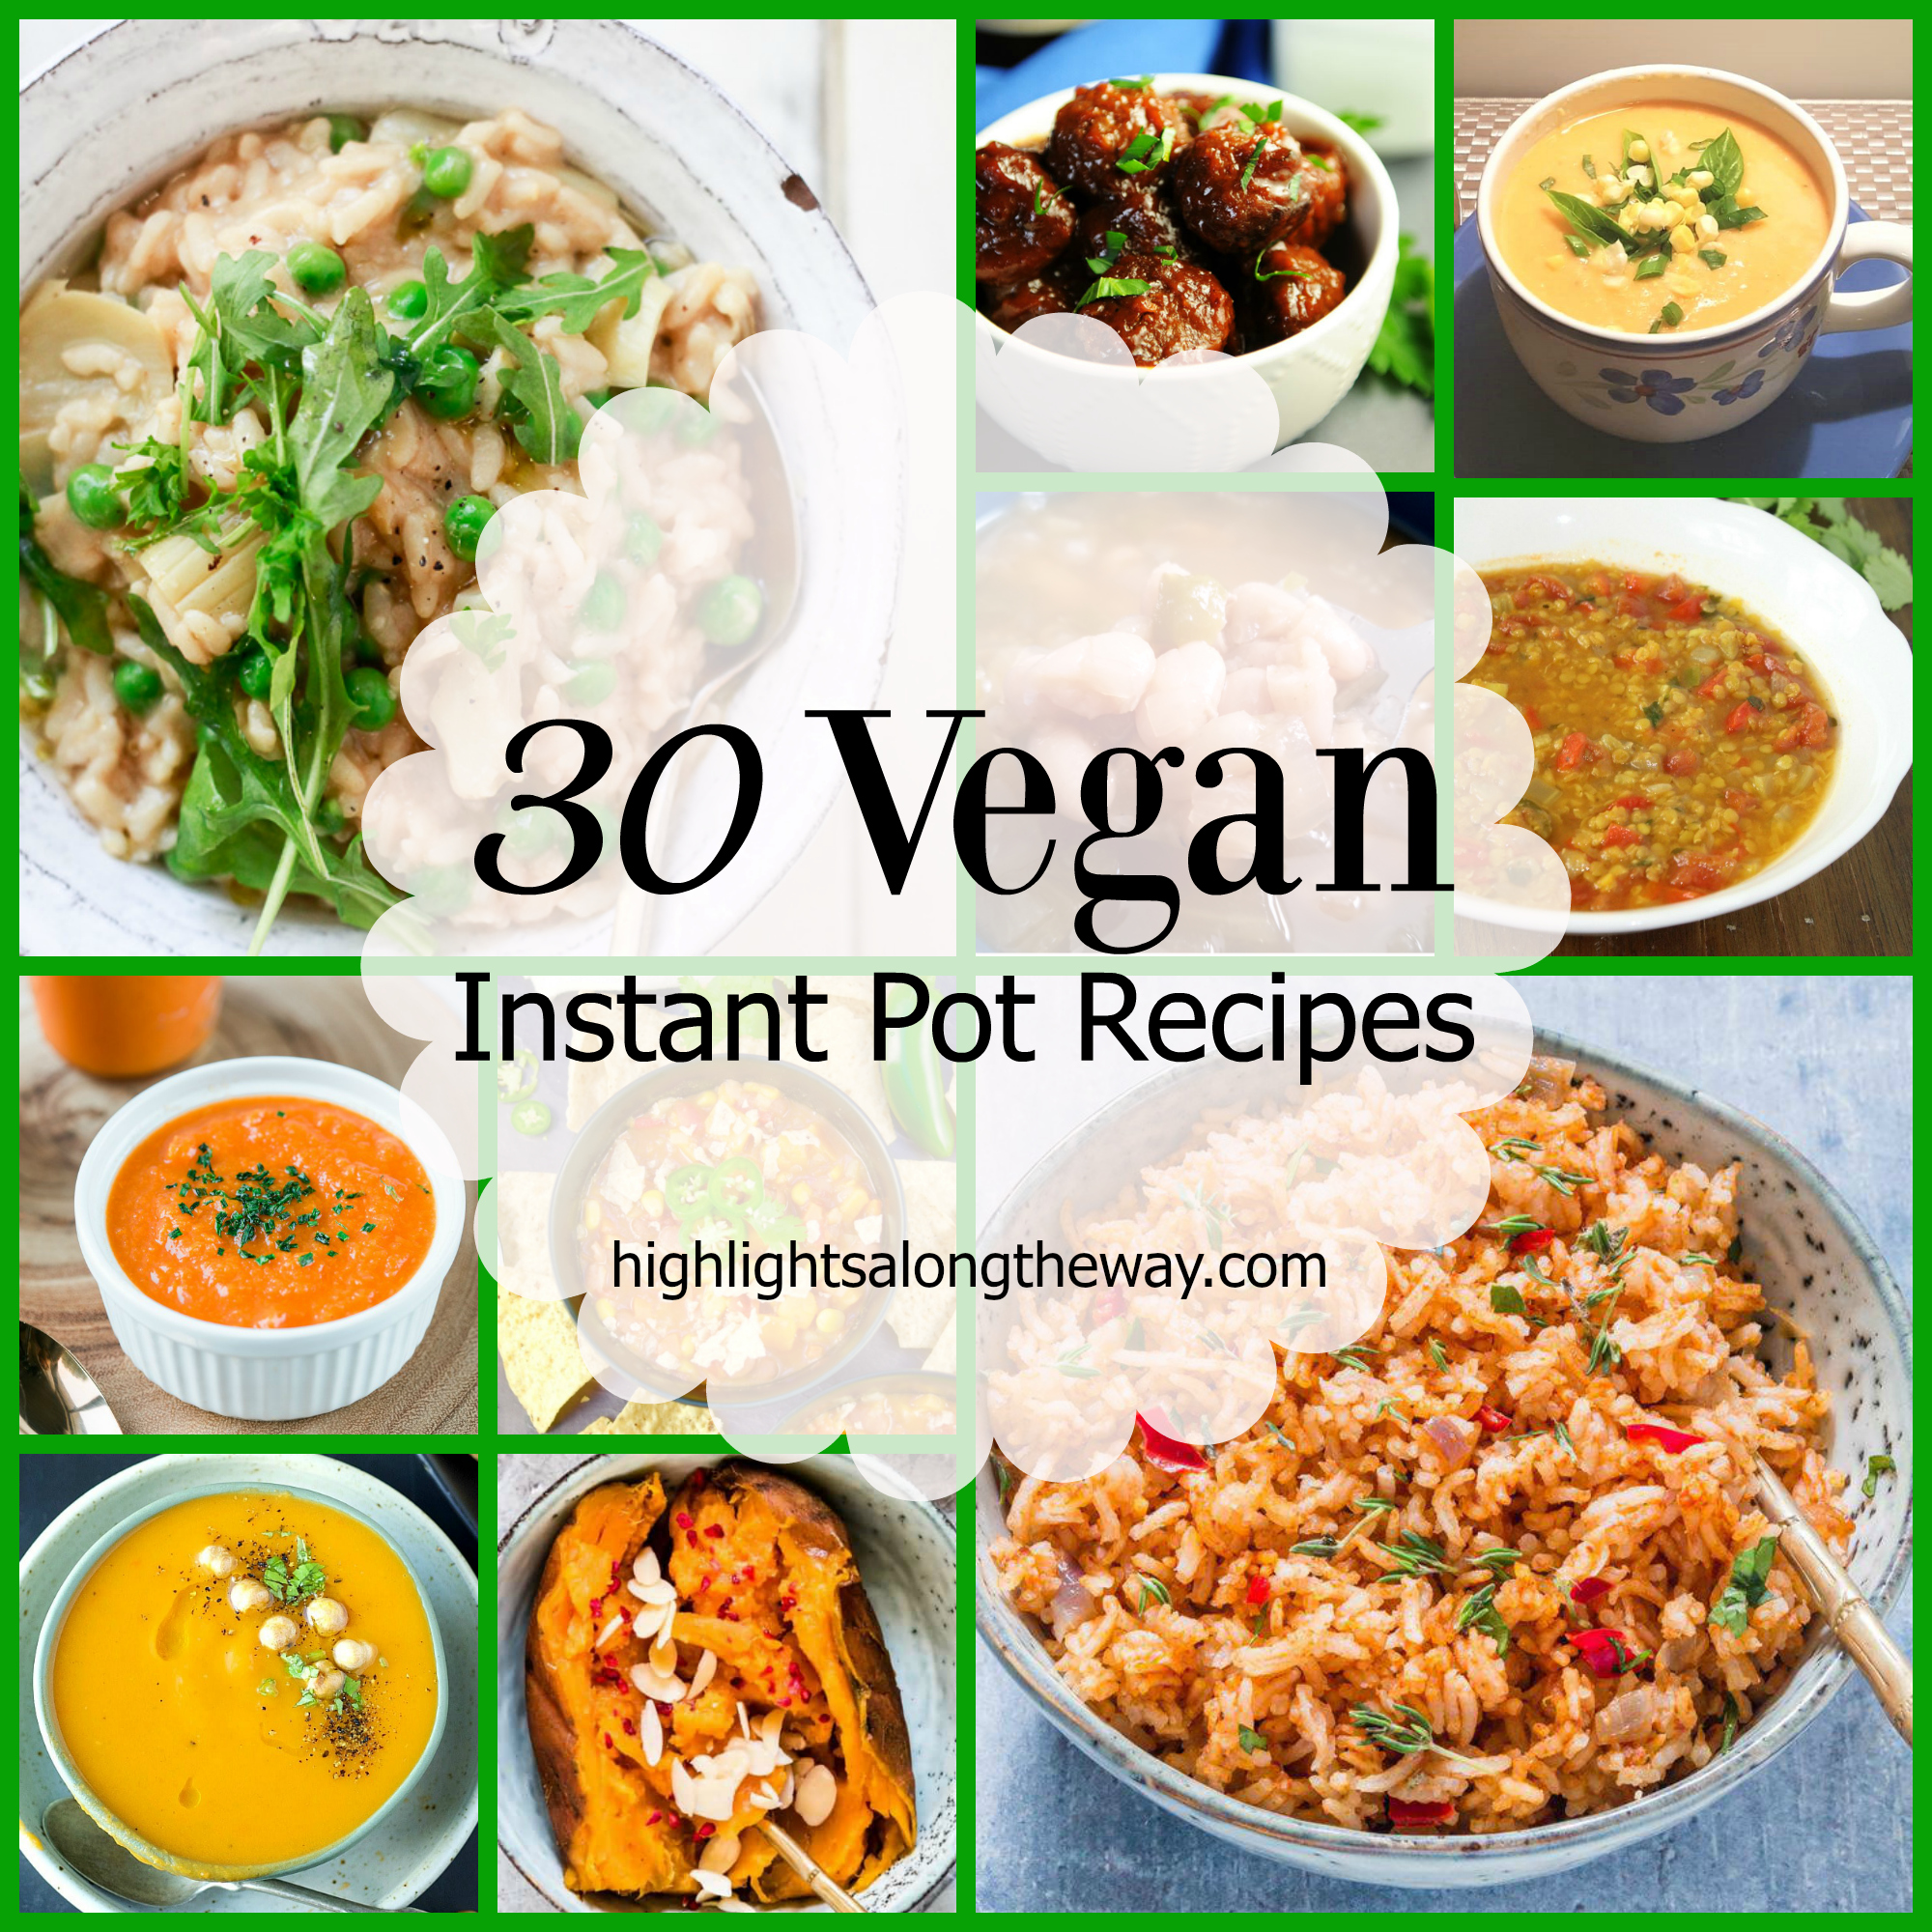 30 EASY Vegan Instant Pot Recipes you can make right now!